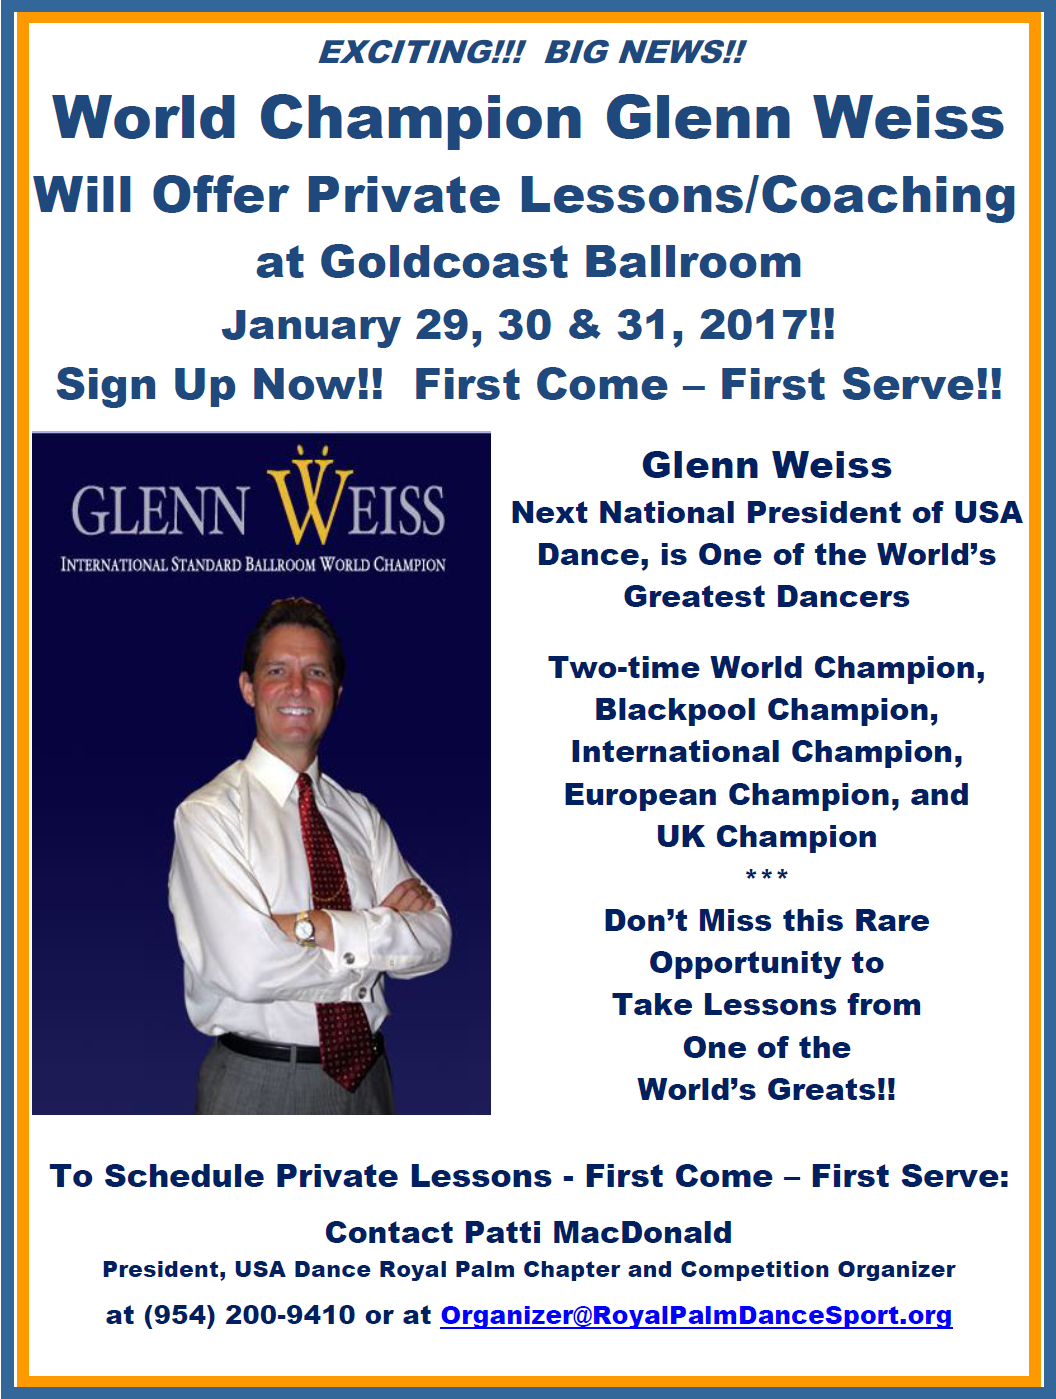 Glenn Weiss - Private Lessons - January 29-31, 2016 - Sign Up Now! - First Come- First Serve